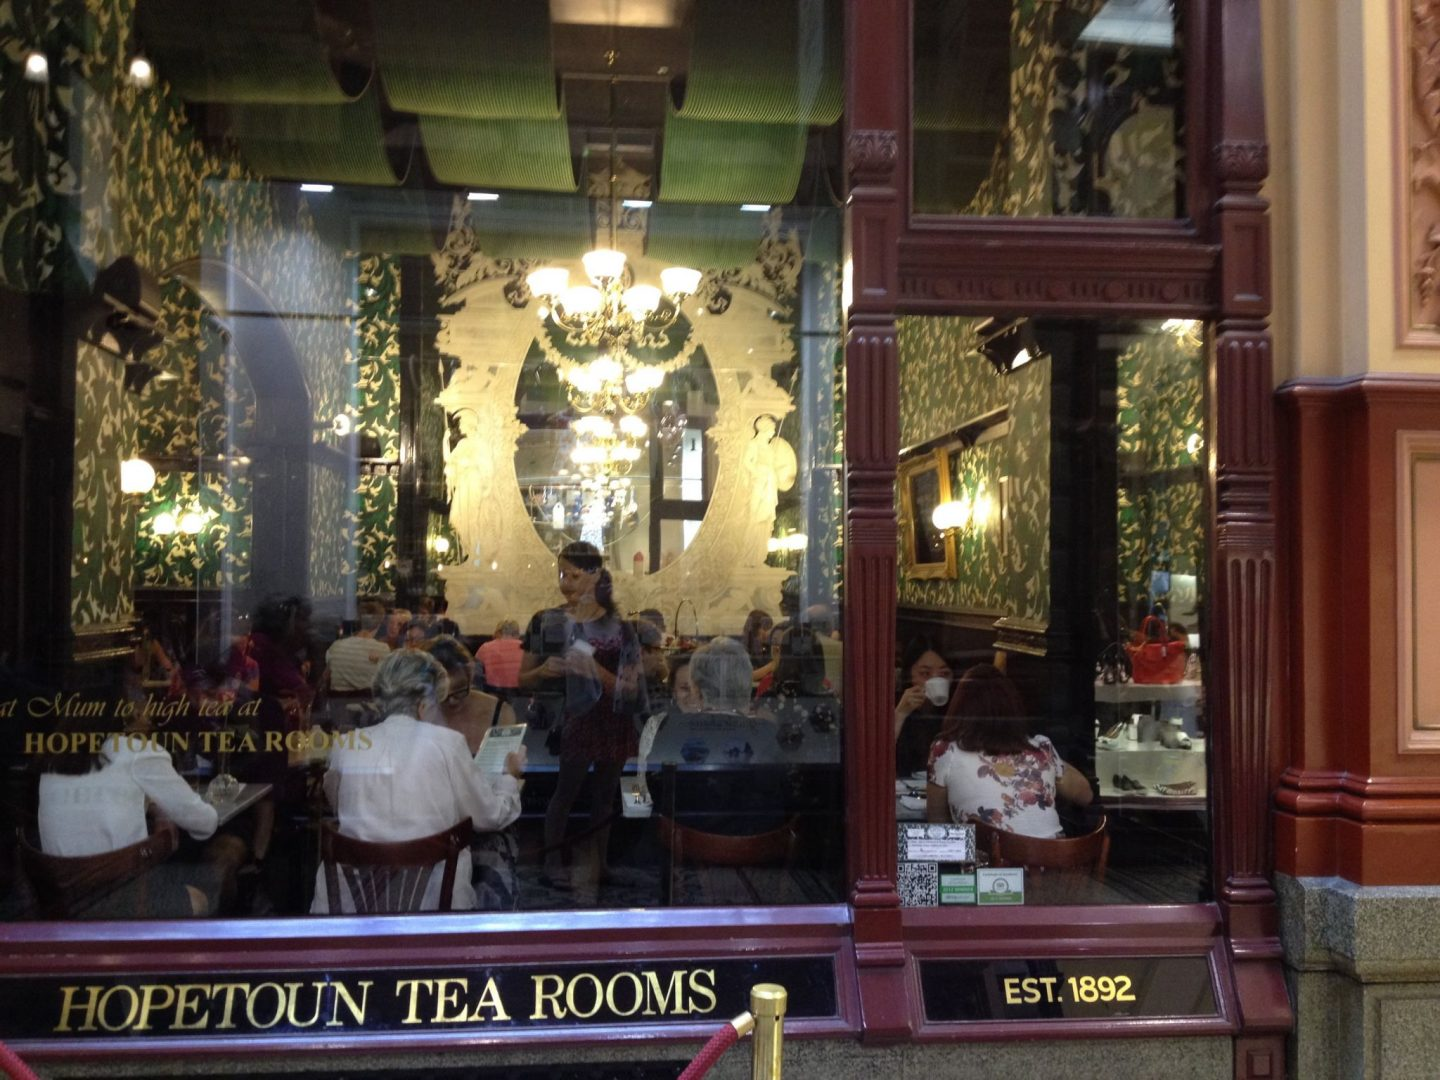 Hopetoun Tea Rooms, Melbourne